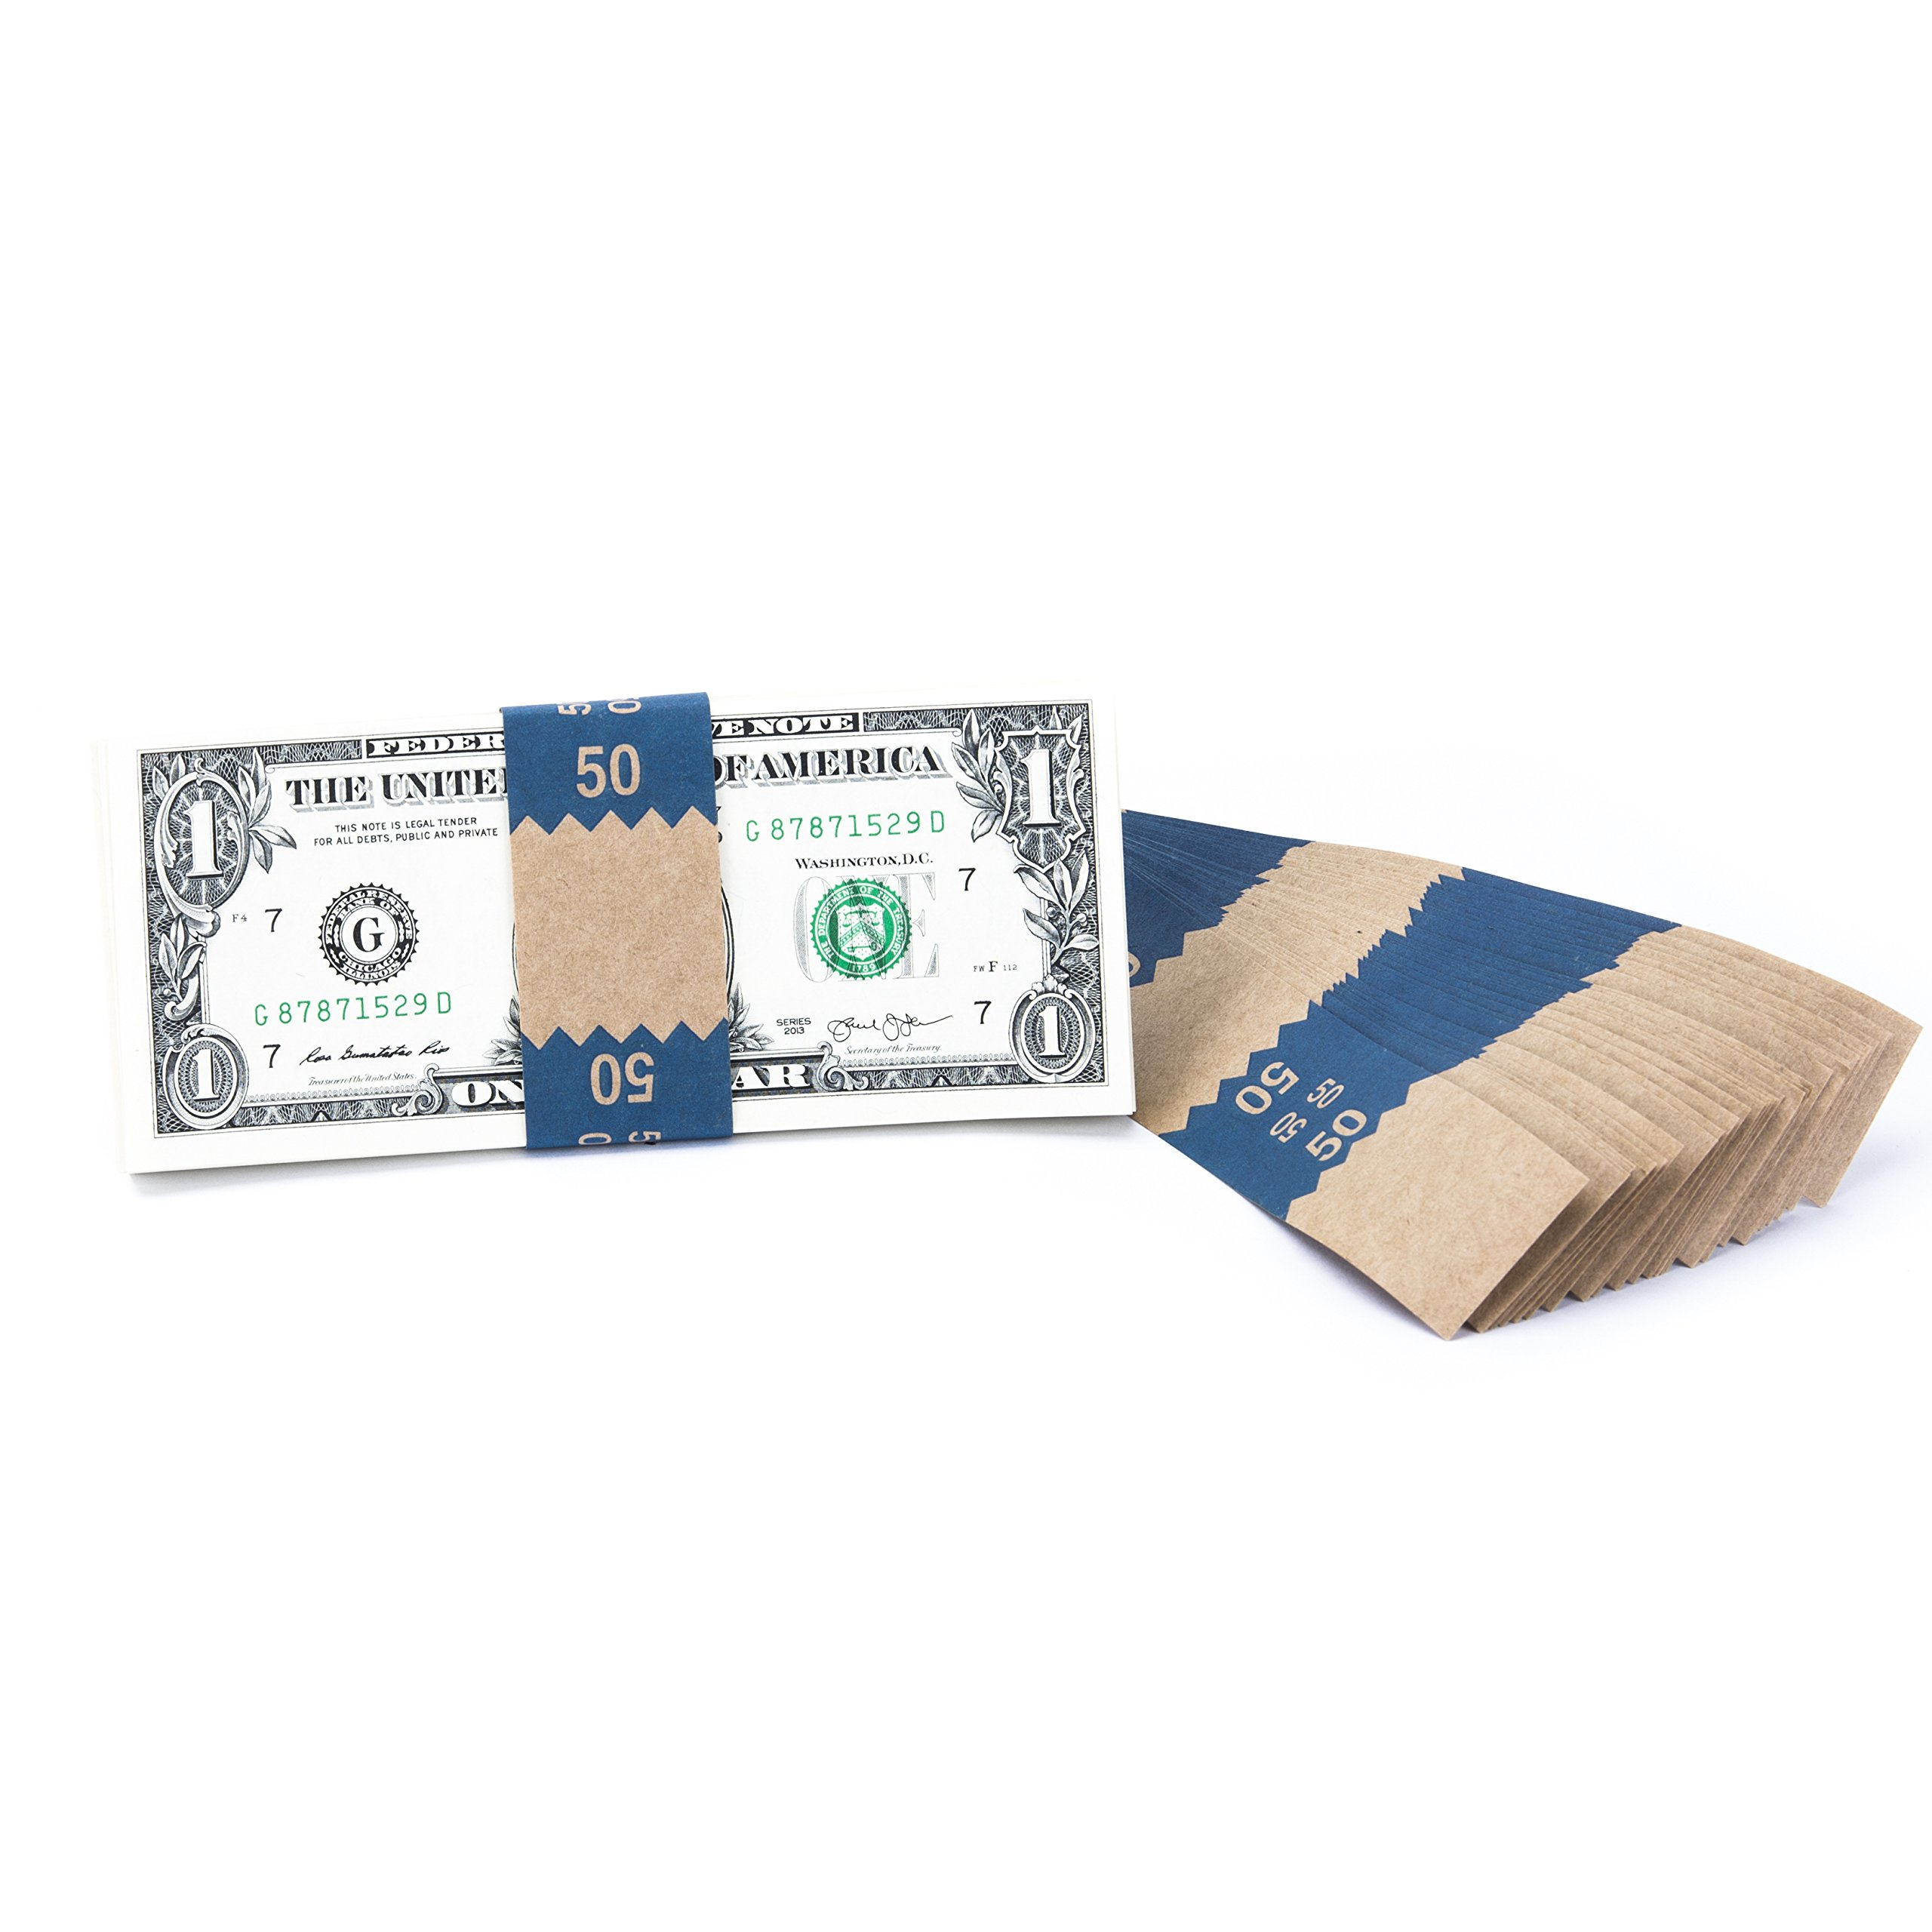 Natural Kraft Saw-Tooth $50 Currency Band Bundles (10000 Bands) by Carousel Checks Inc.